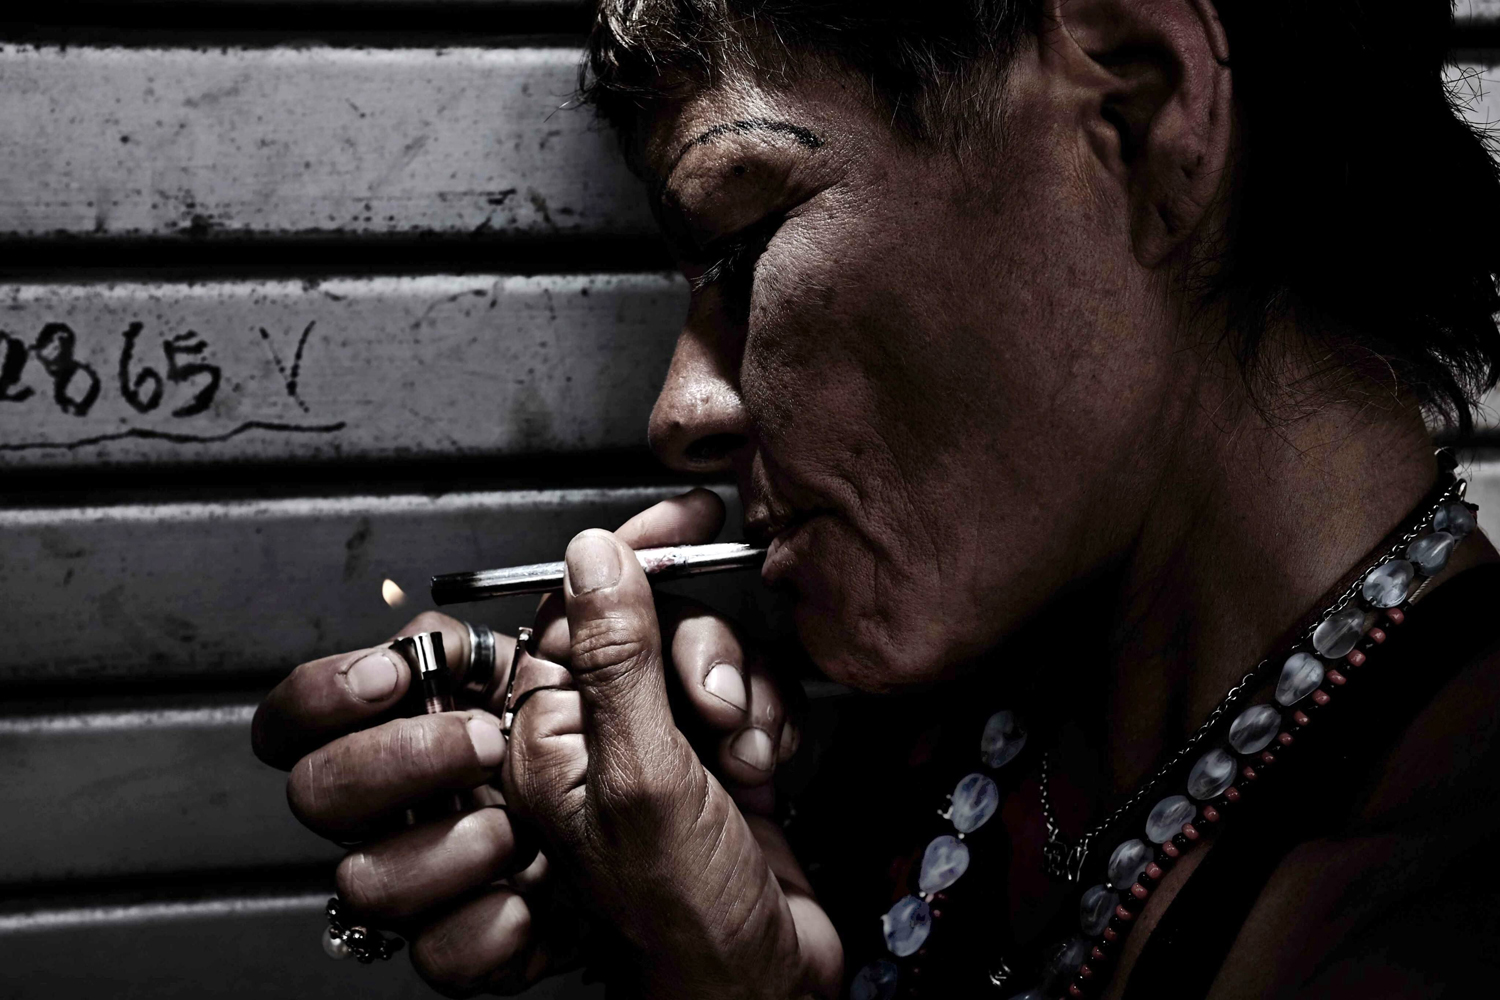 Sept. 3, 2014. A drug addict smokes drugs at a shanty town in the city of San Jose, Costa Rica.